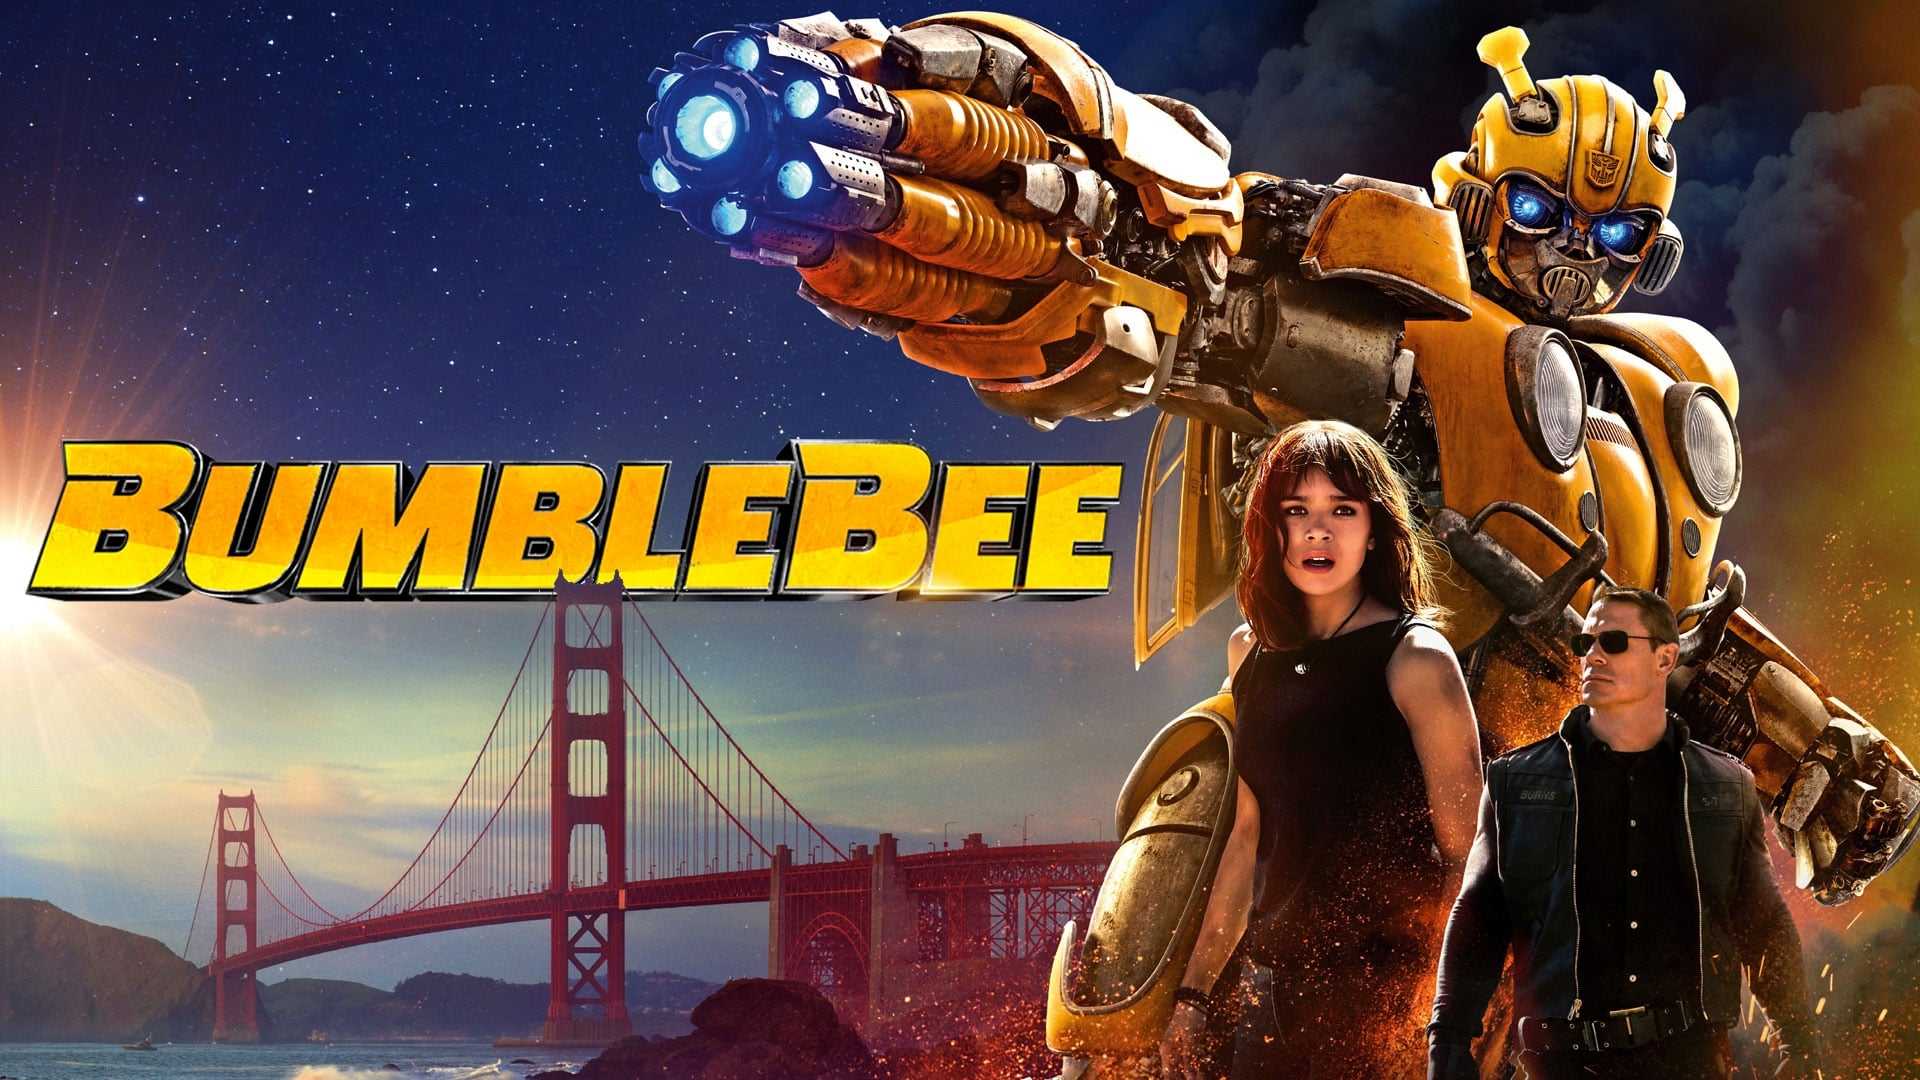 Bumblebee Hd Stream